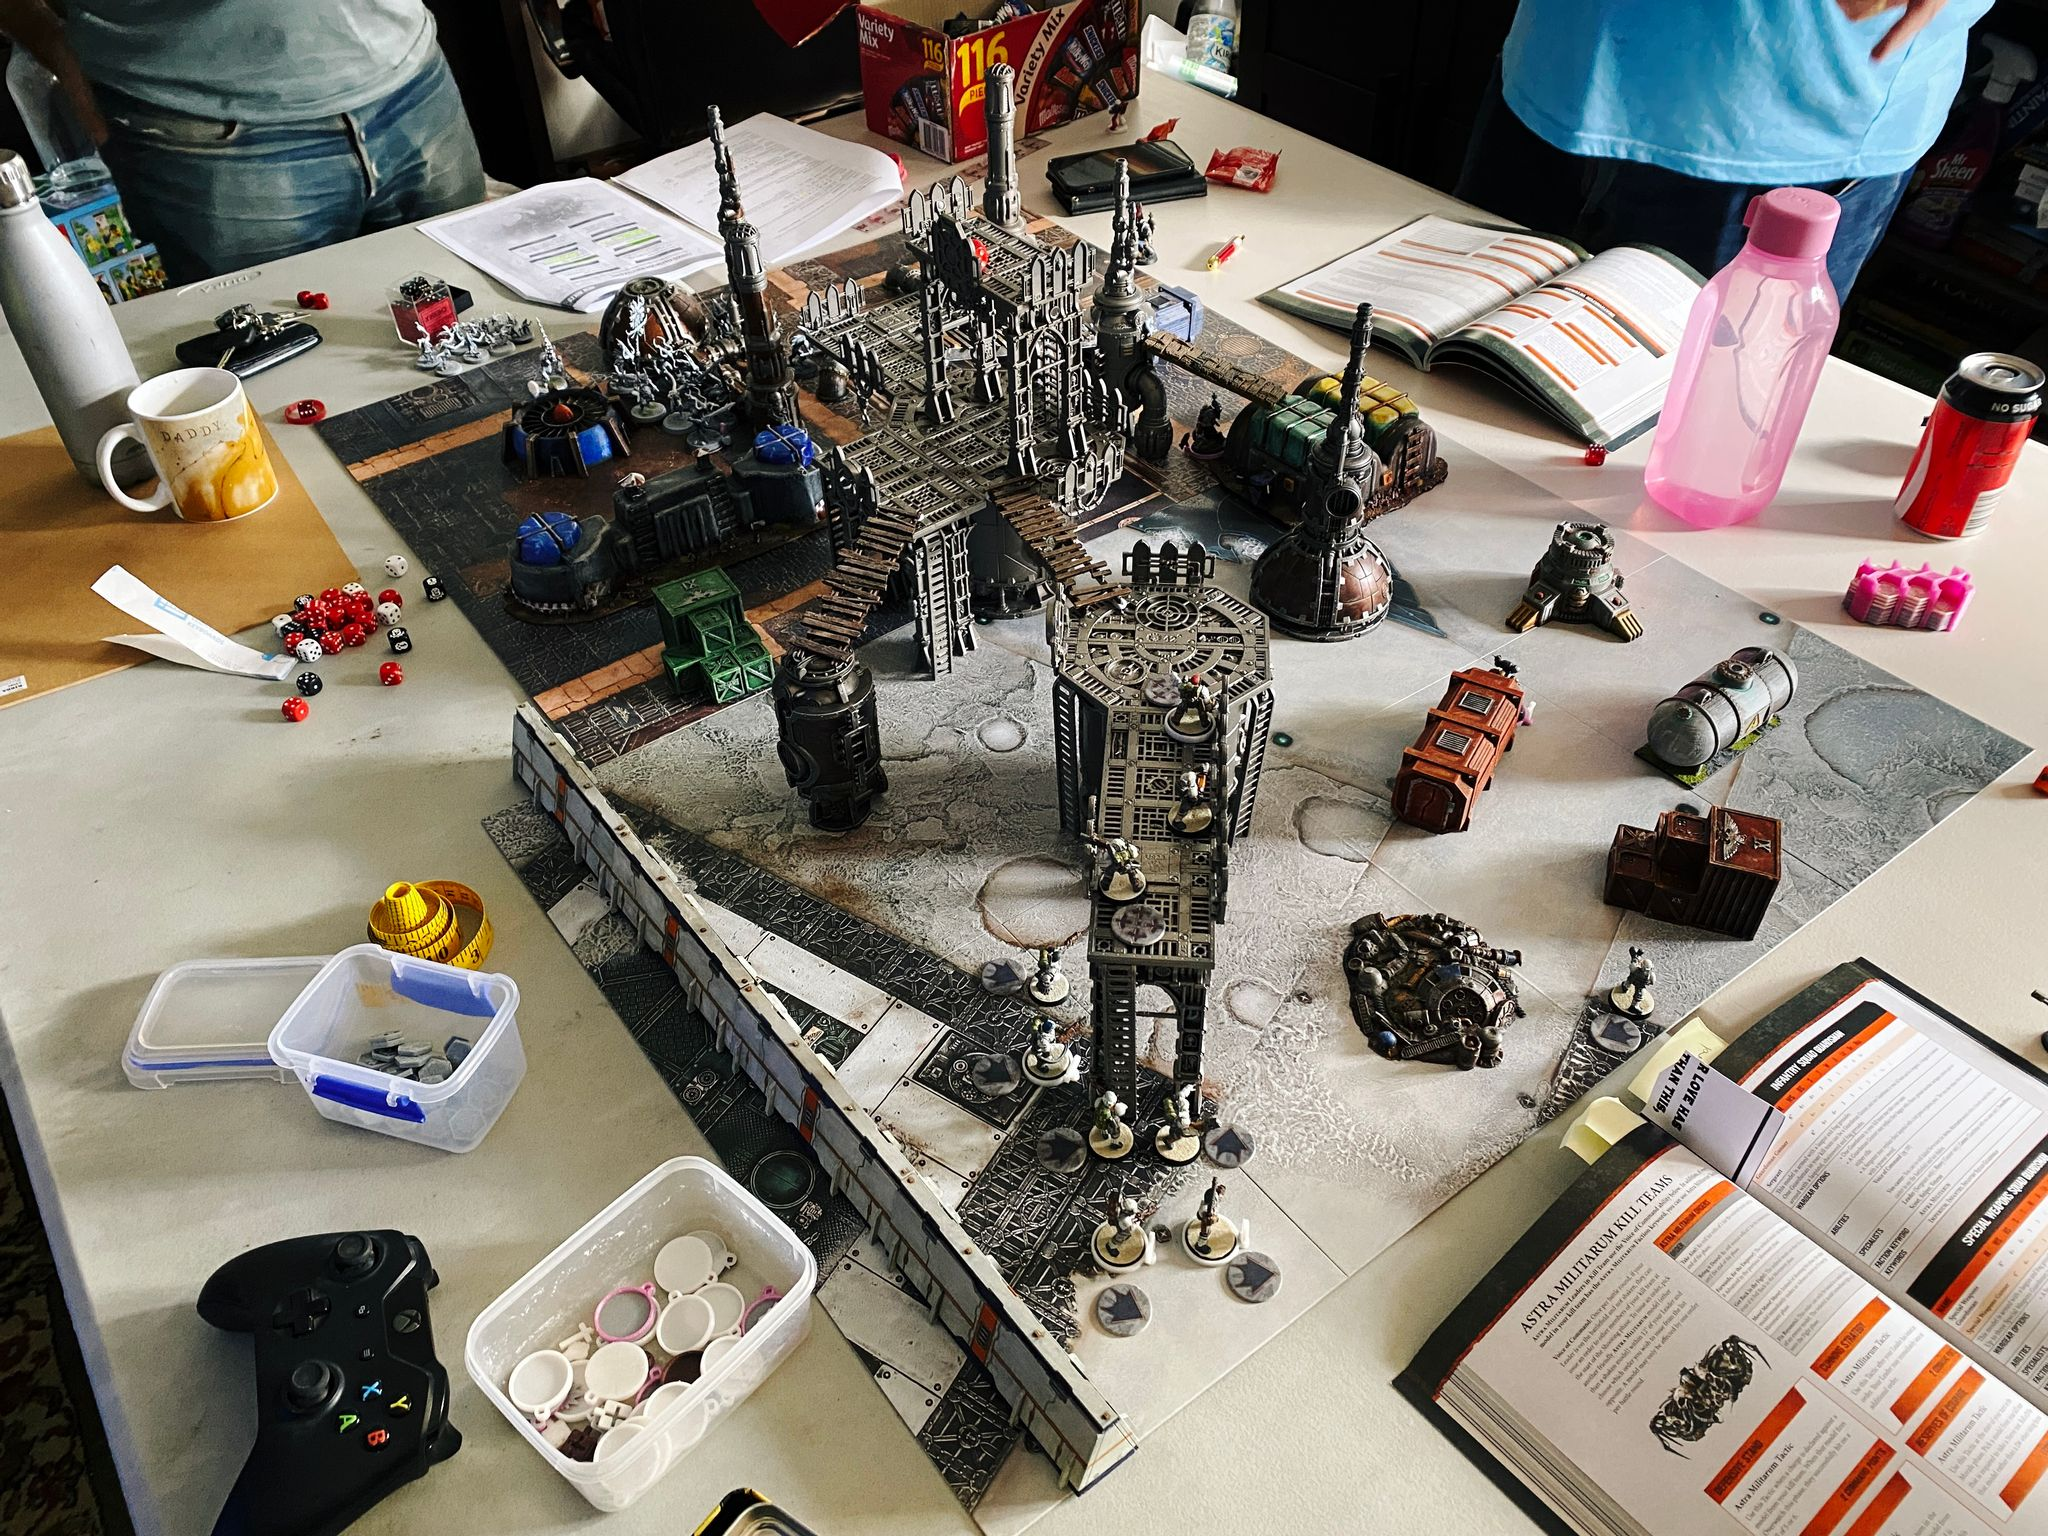 A photo of a 3-player game of Warhammer 40,000: Kill Team. The terrain is all industrial, with lots of pipes and metal structures, as well as shipping containers and cargo crates, and some bridges connecting the various upper levels.